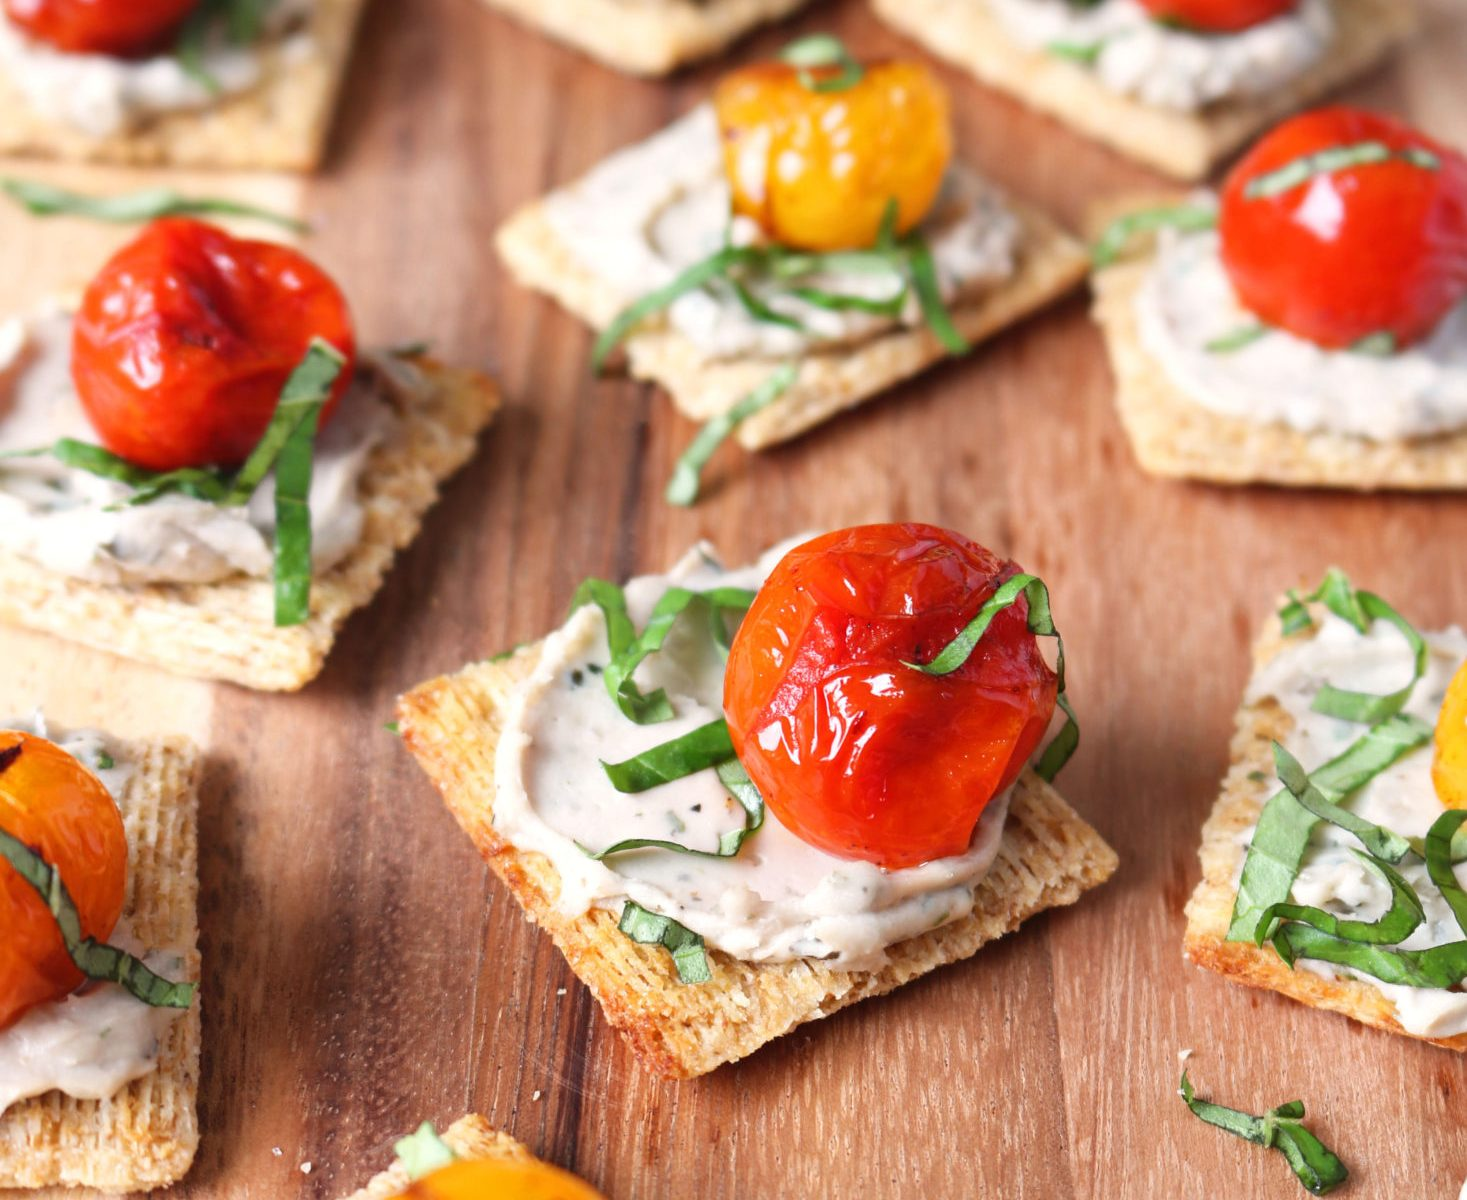 Mini Vegan Toasts with Cheese, Blistered Tomatoes, and Basil